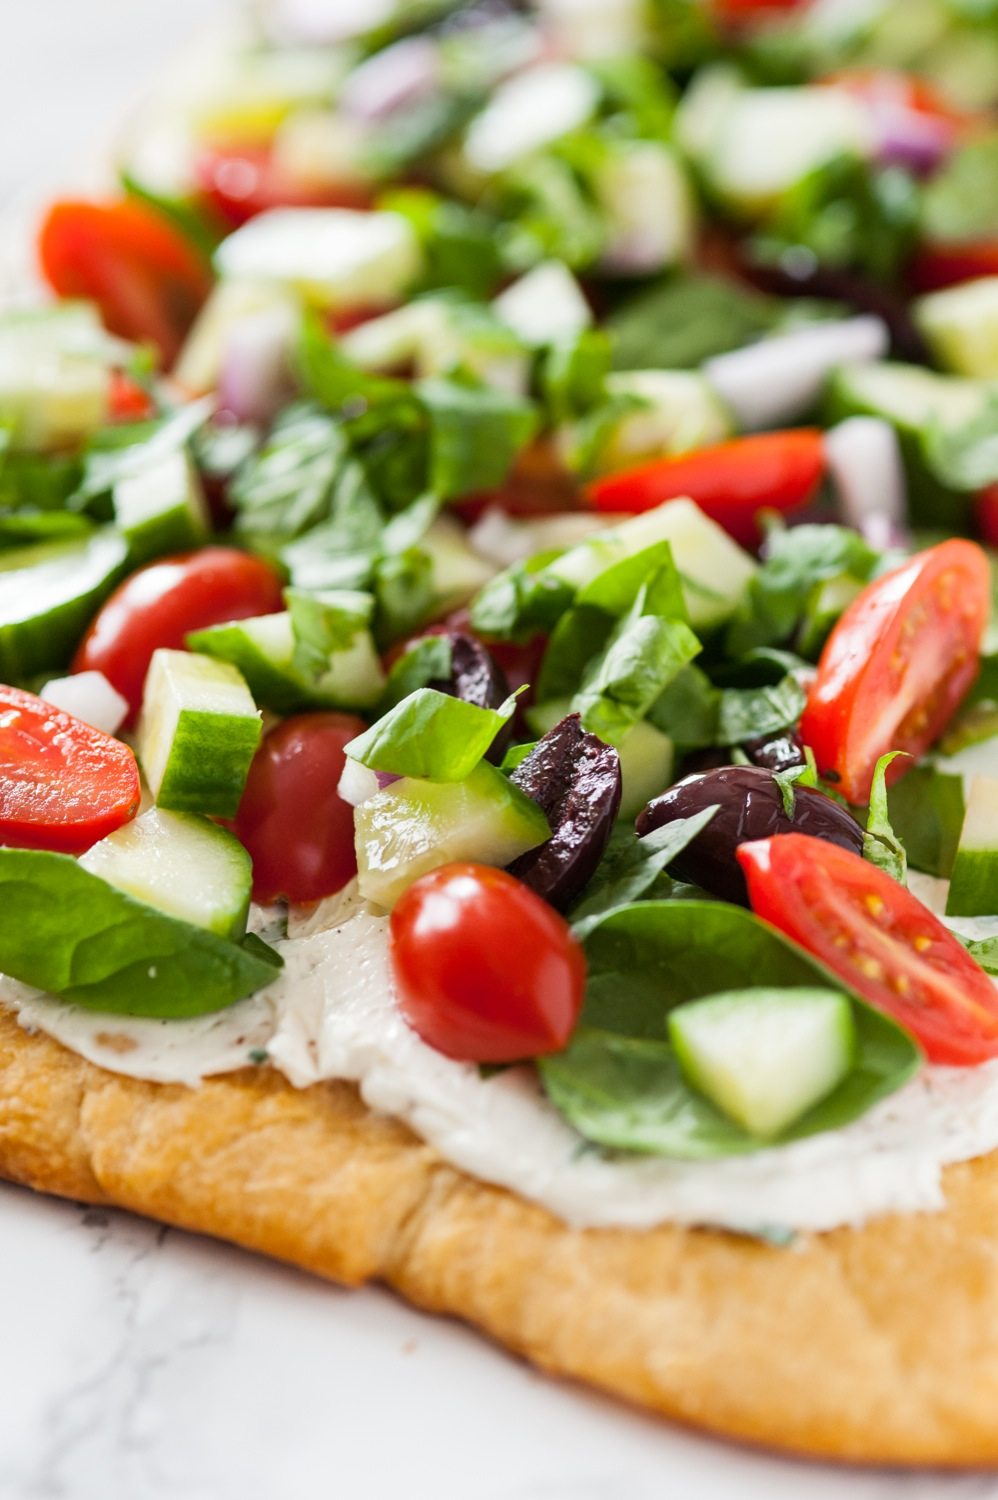 Mediterranean Veggie Flatbread Recipe | Entertaining ideas, appetizer recipes and more from @cydconverse